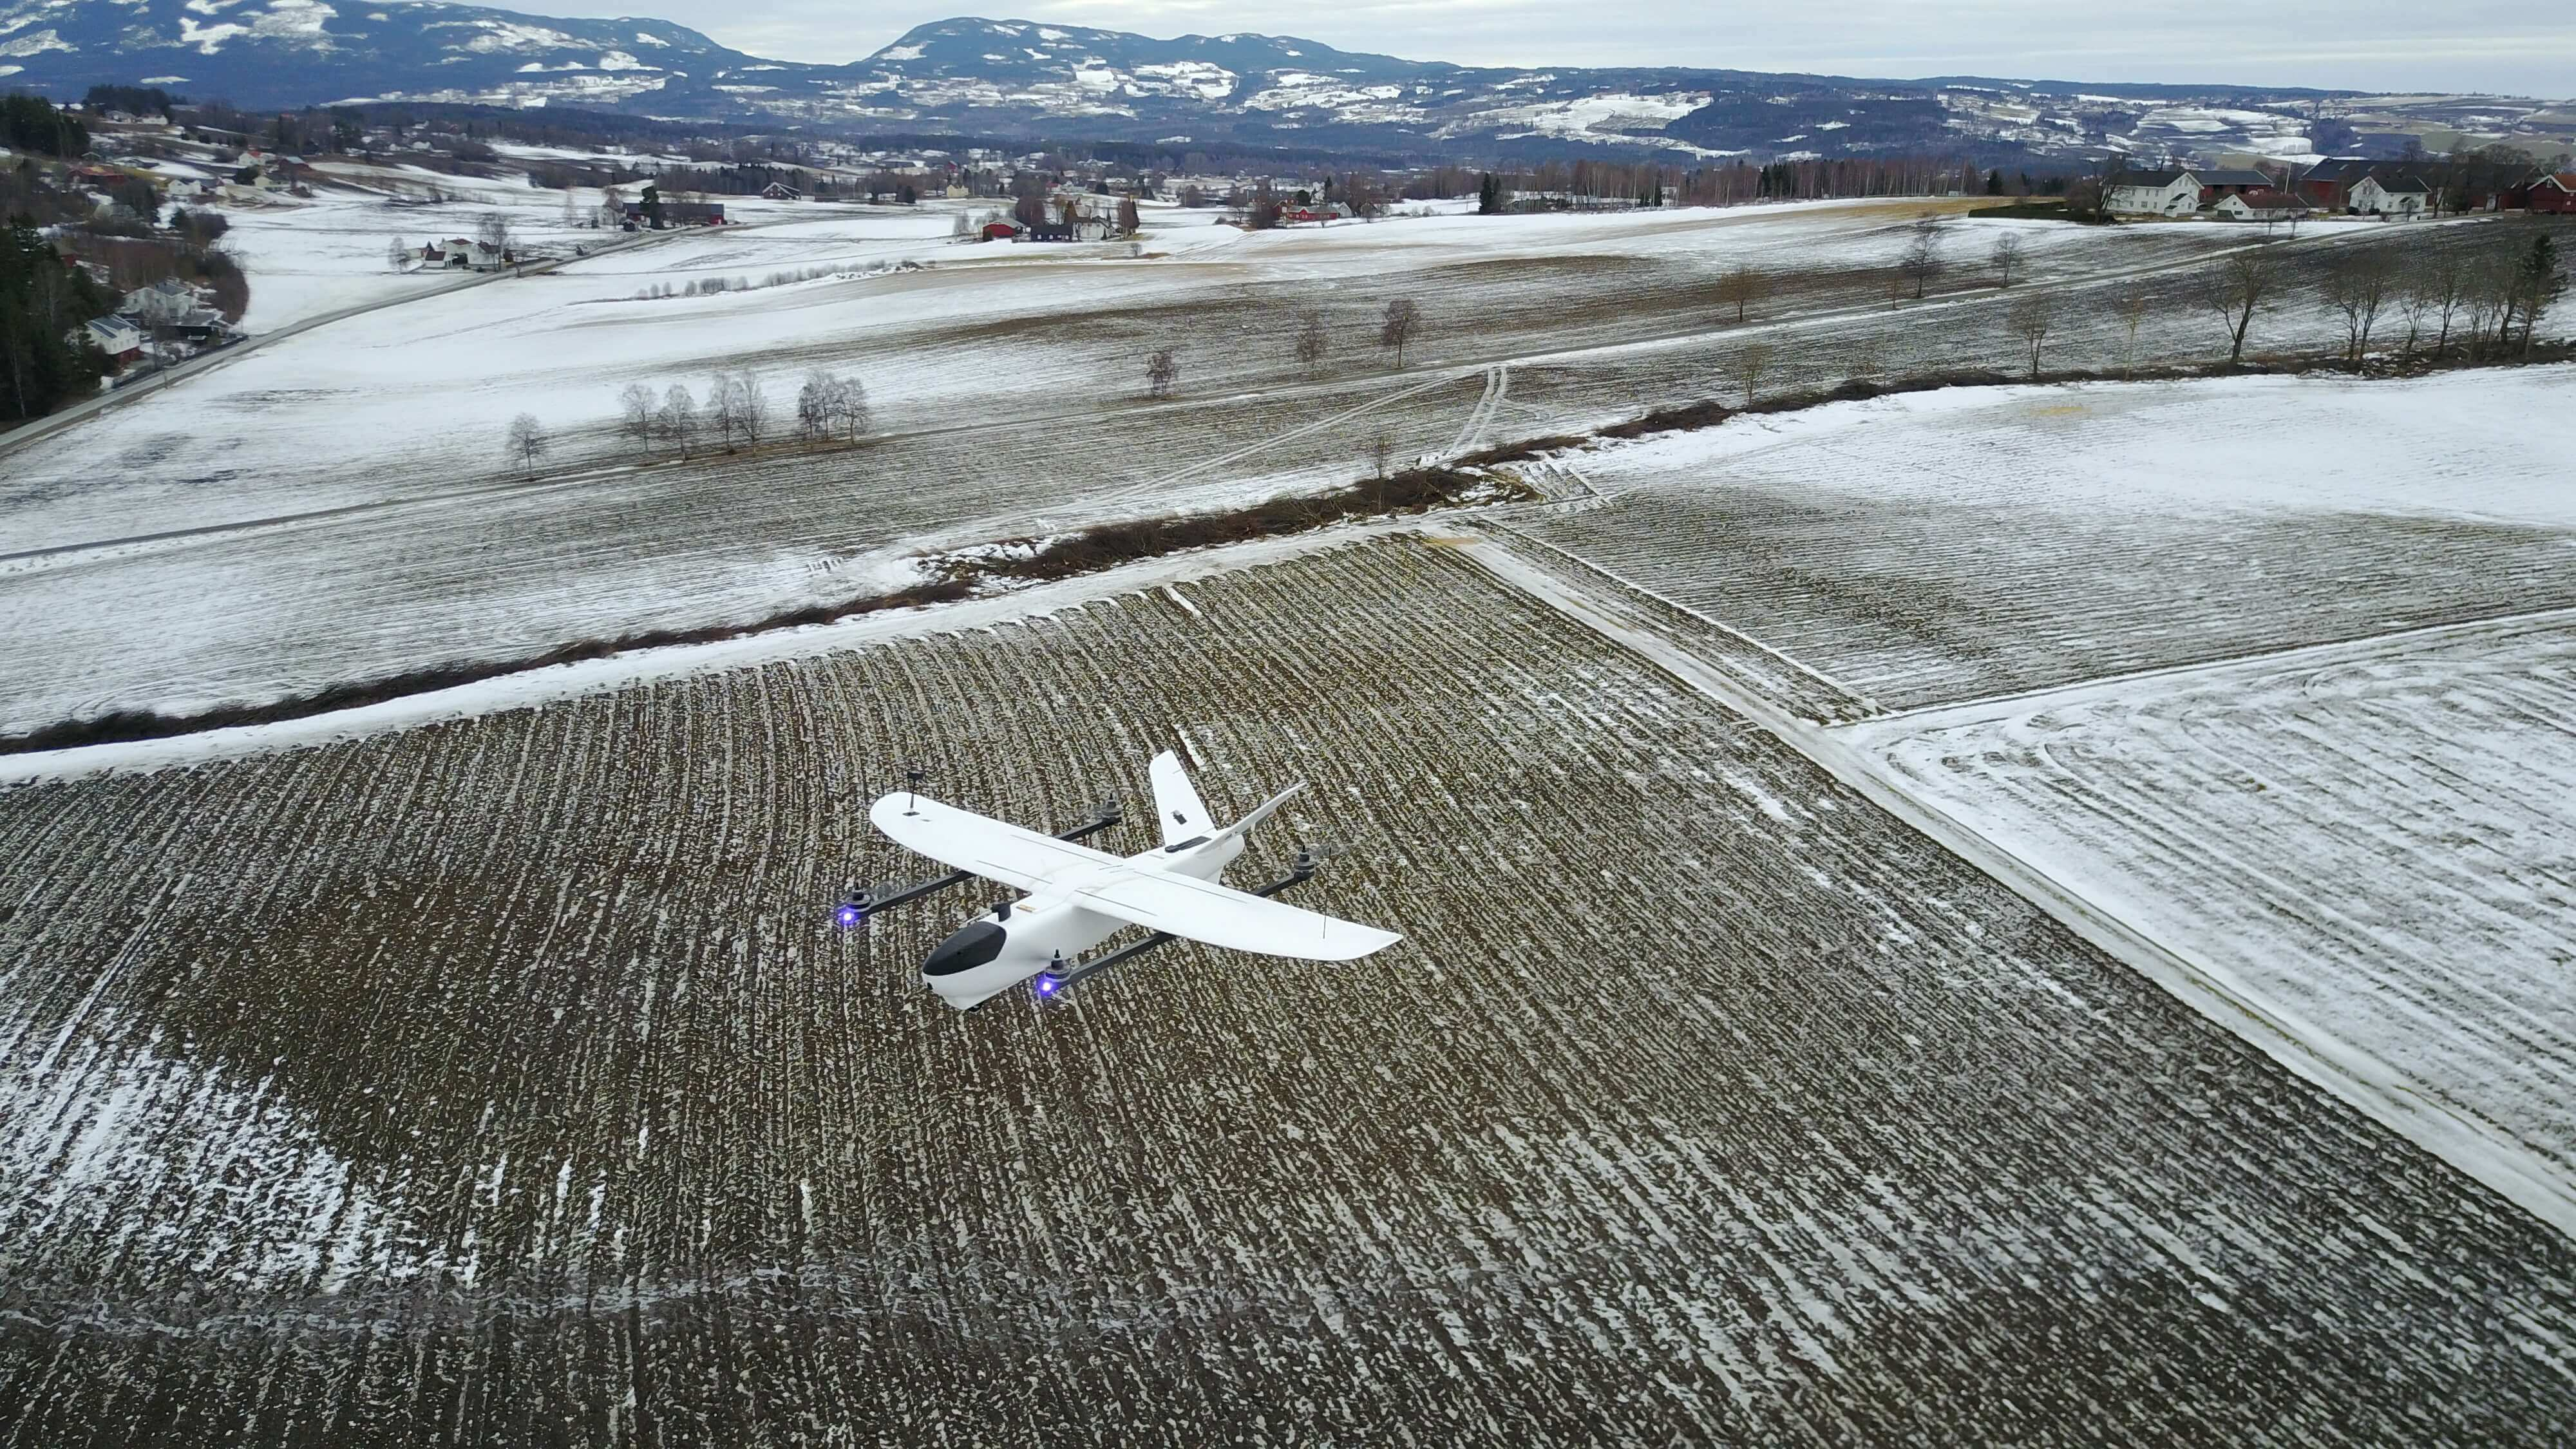 Vtol hybrid  prototype UAV hovering over field